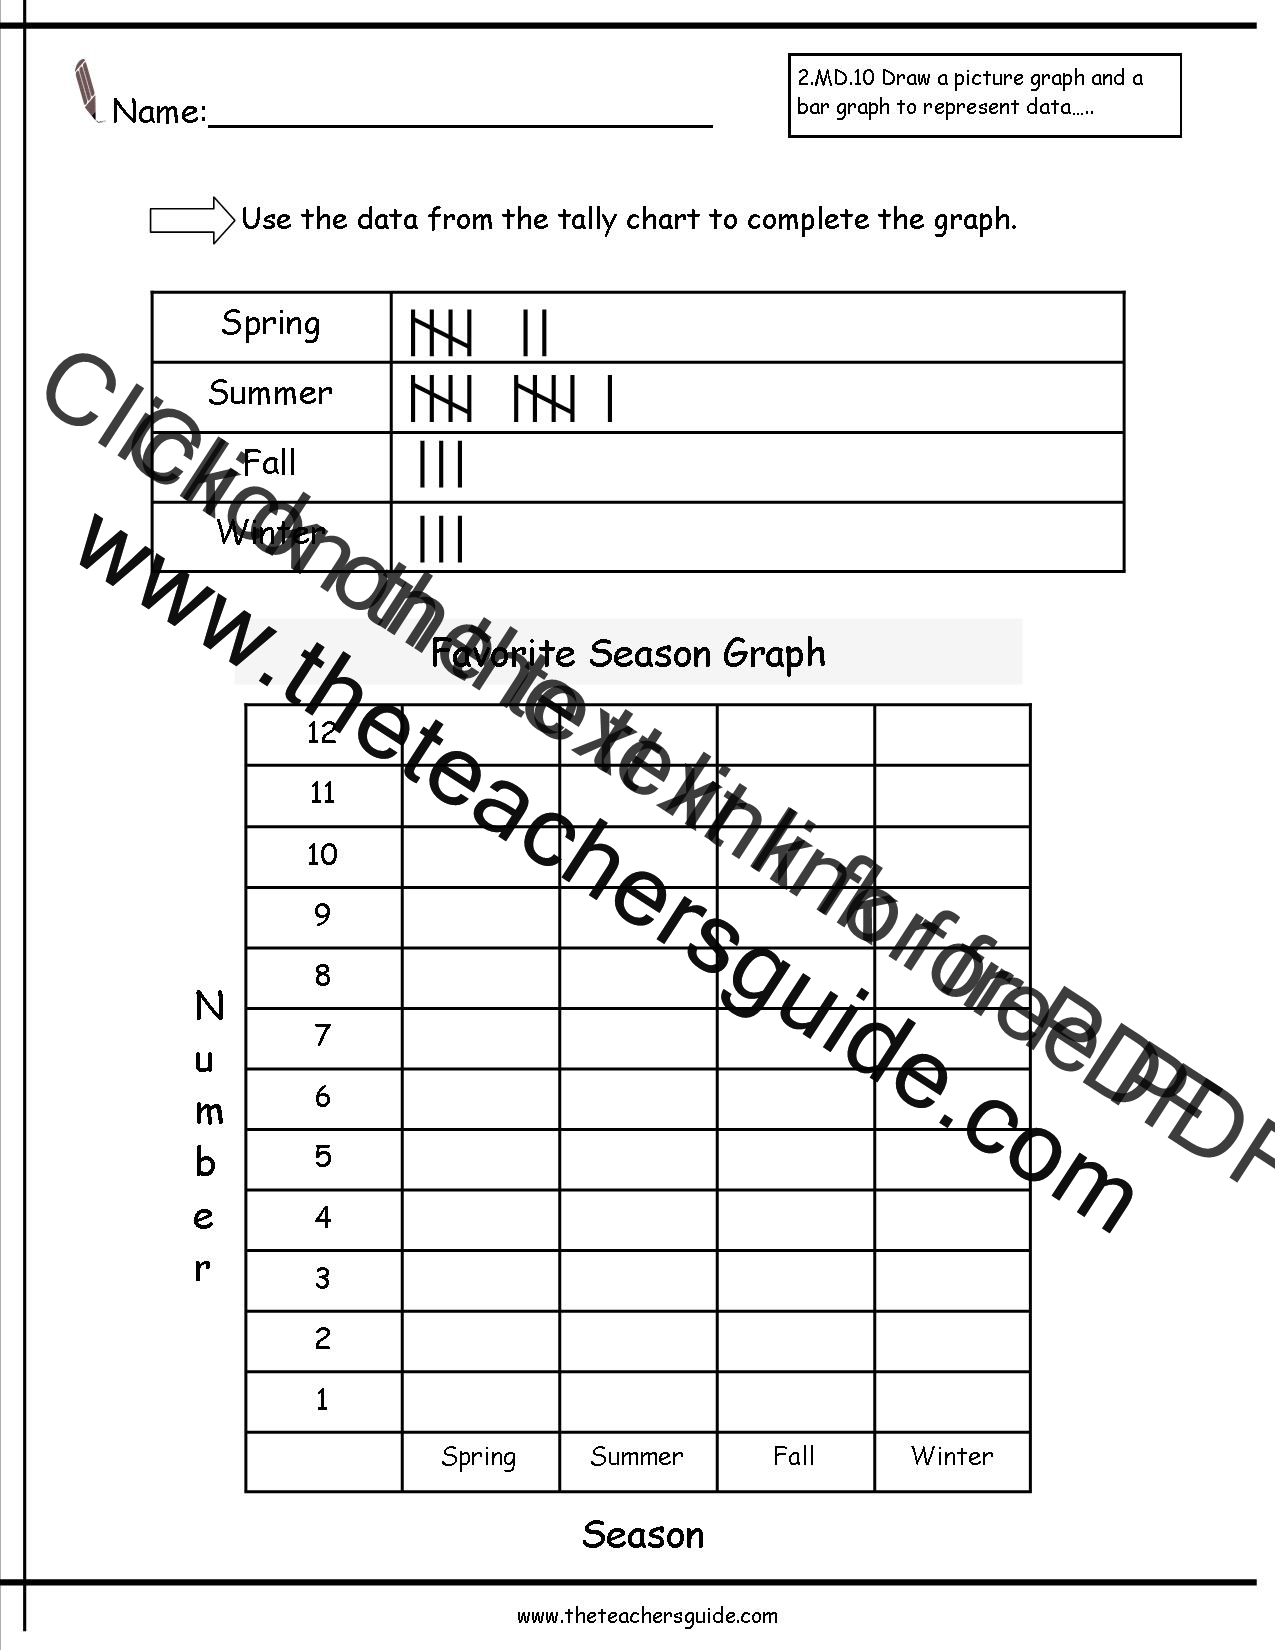 Reading and Creating Bar Graphs Worksheets from The Teachers Guide – Bar Graph Worksheets